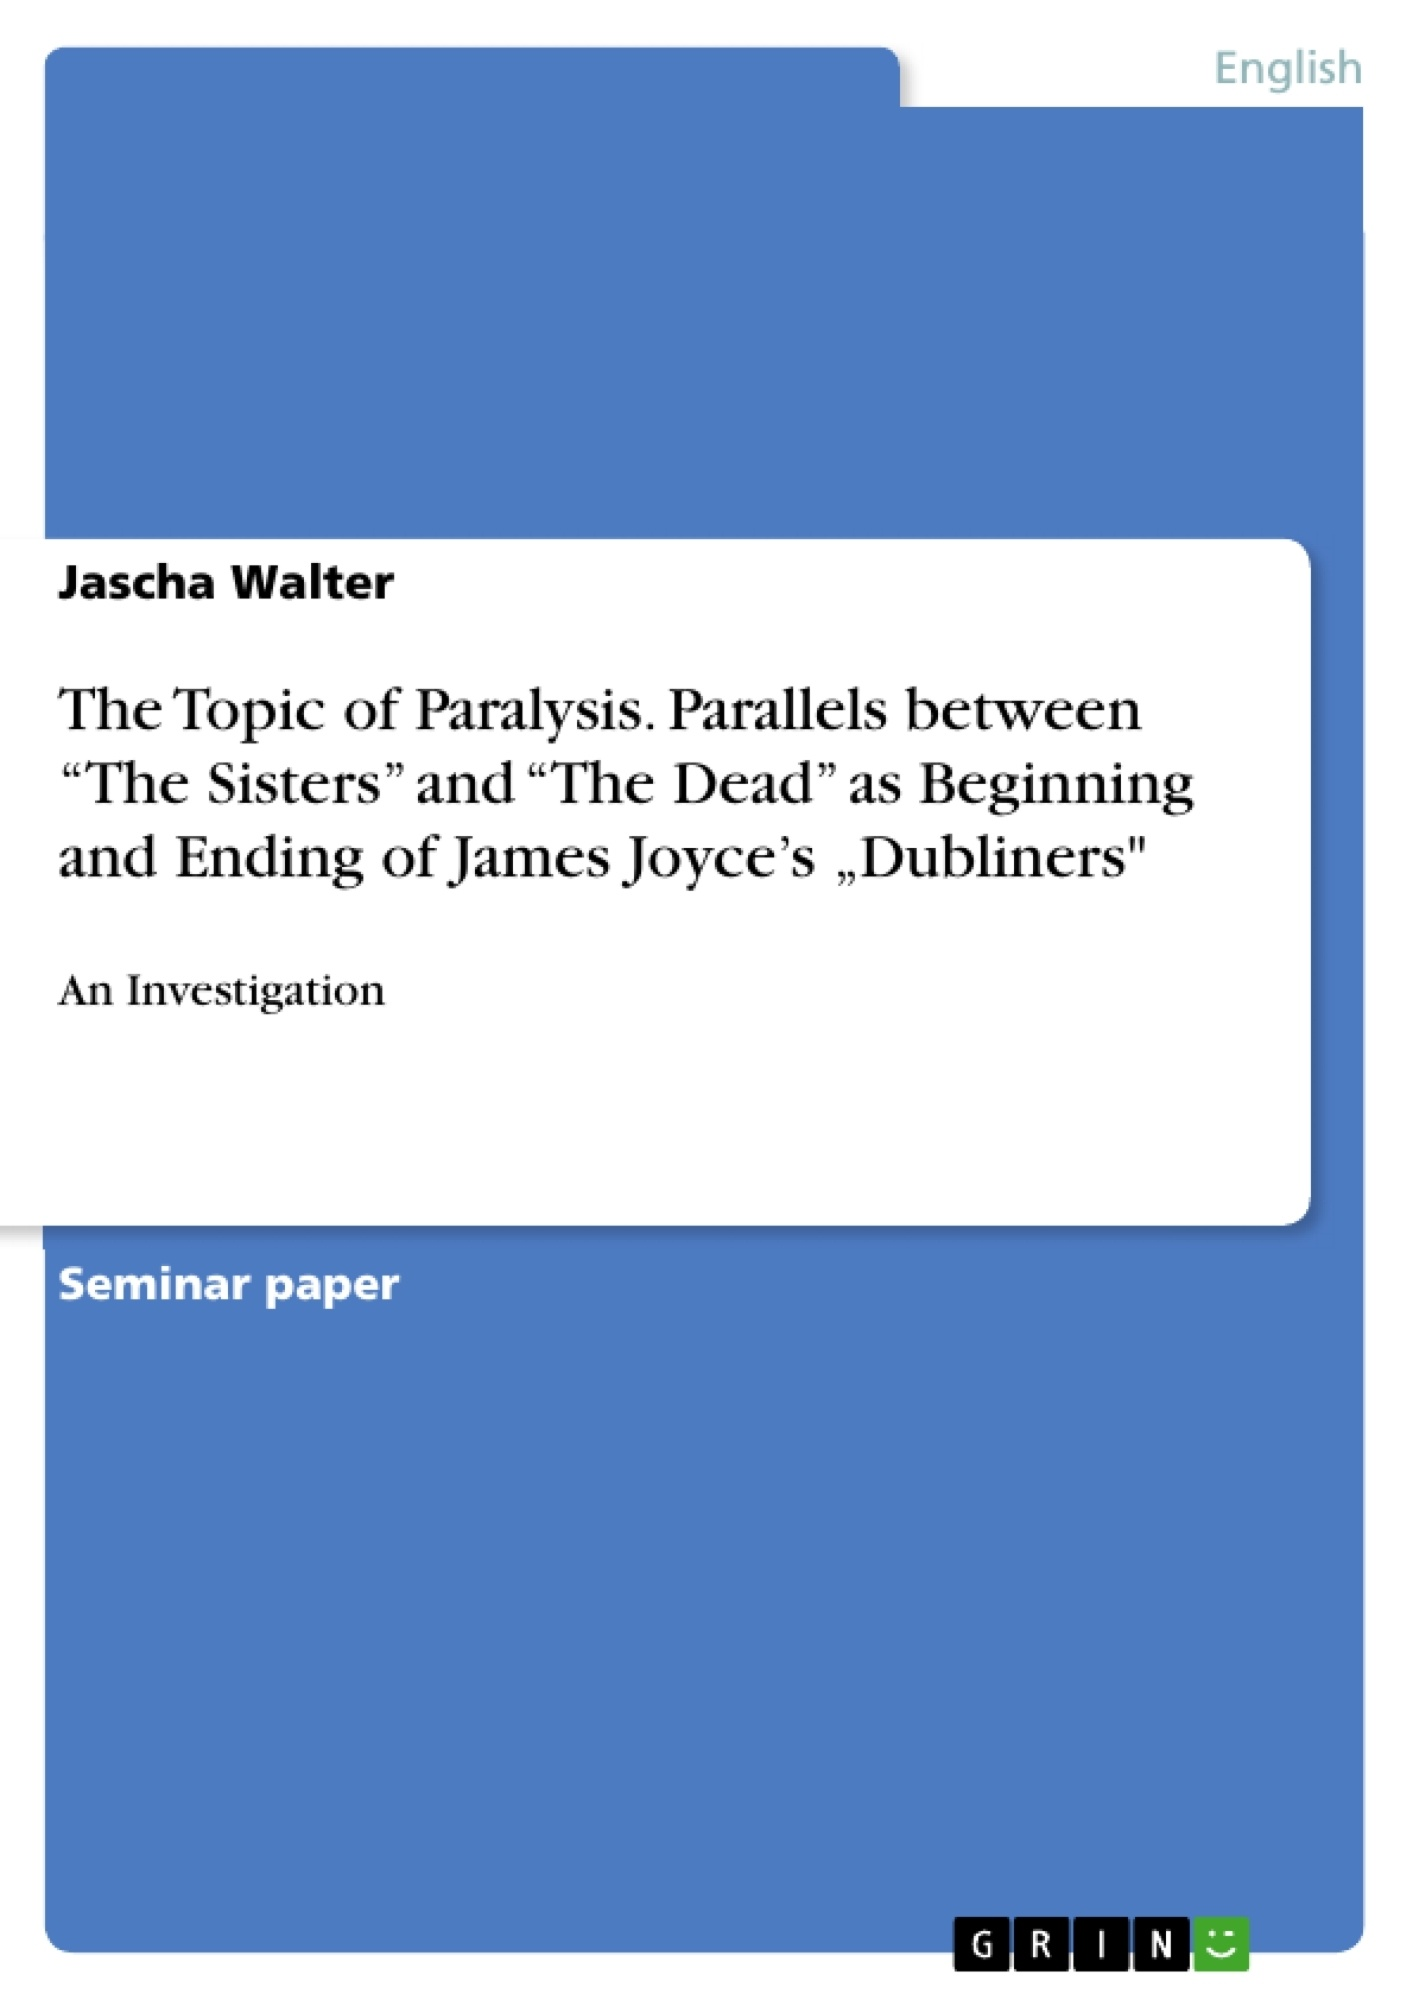 """Title: The Topic of Paralysis. Parallels between """"The Sisters"""" and """"The Dead"""" as Beginning and Ending of James Joyce's """"Dubliners"""""""